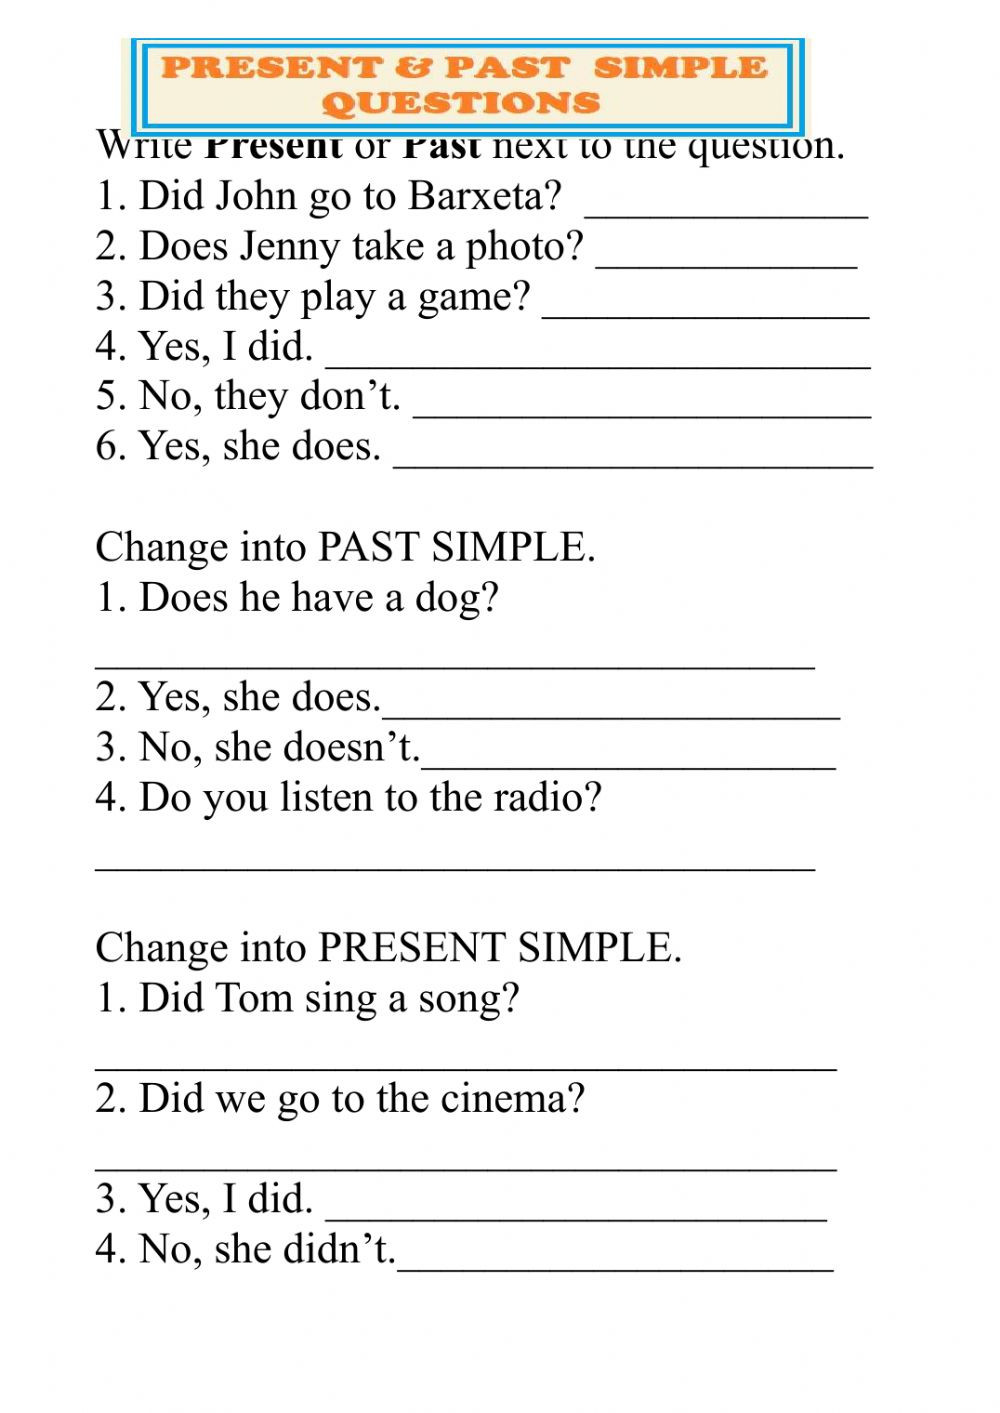 Verb Tense Worksheets 5th Grade Present and Past Simple Questions Interactive Worksheet